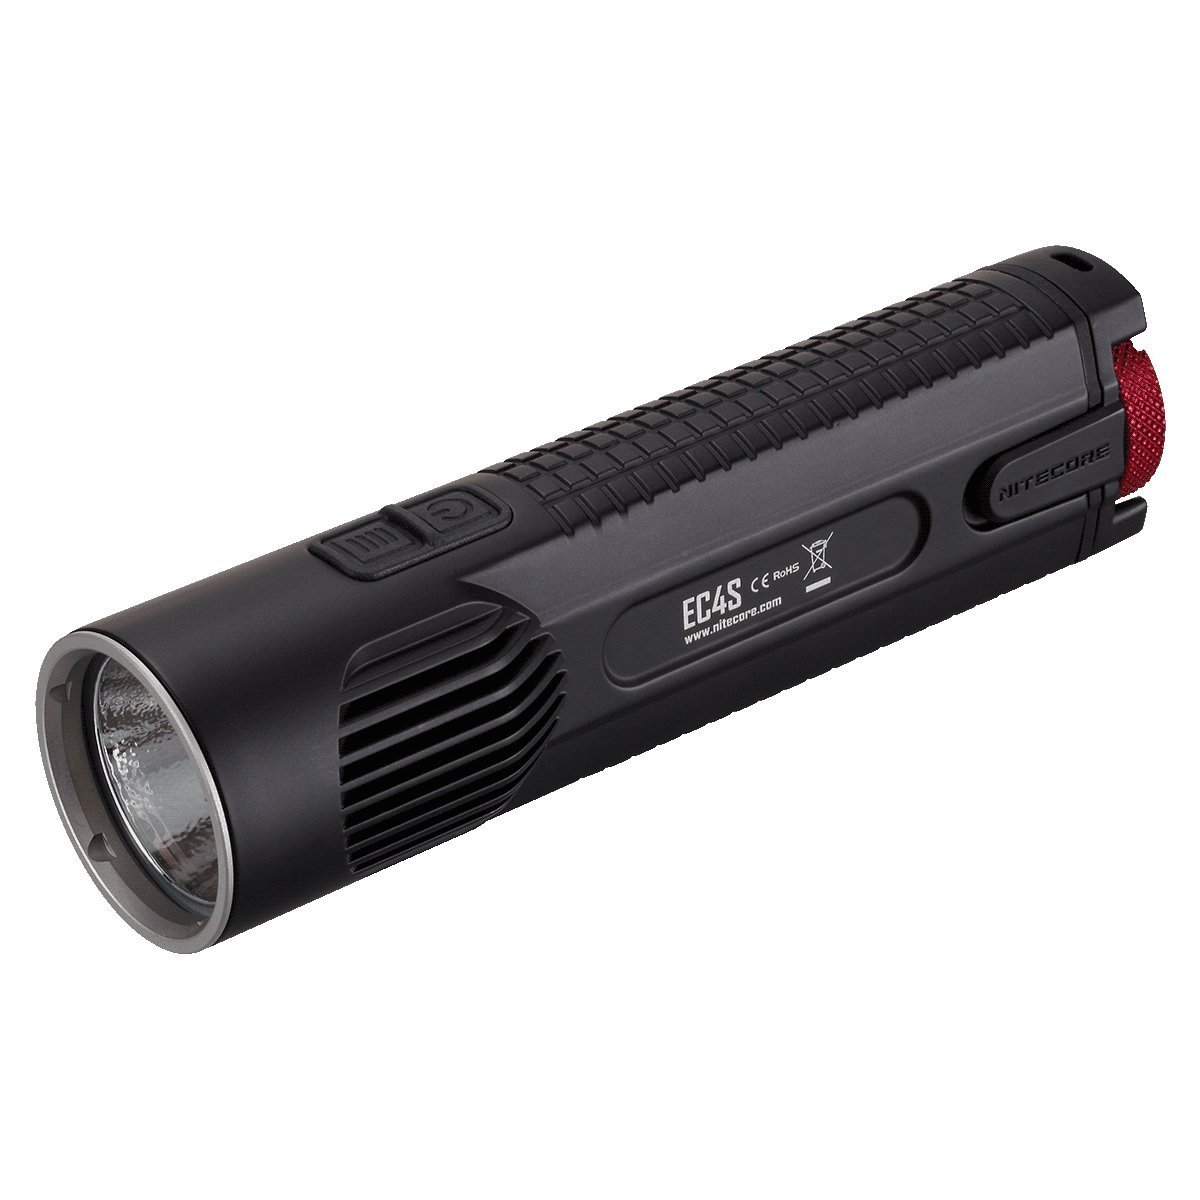 Linternas : Nitecore Ec4s Flashlight Cree Xhp50 Led + Free.